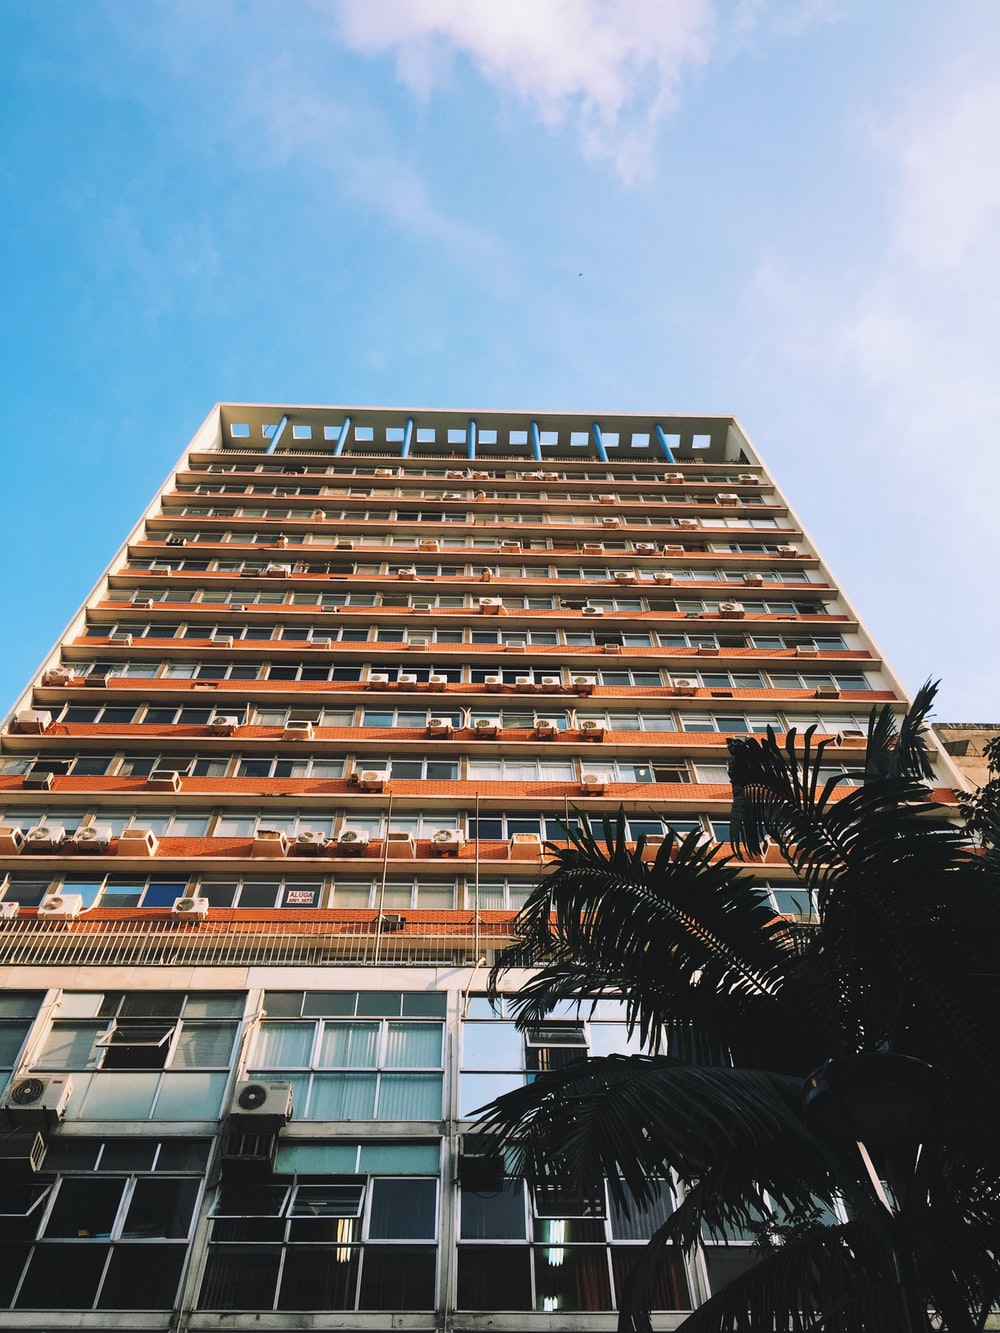 orange and white painted high-rise building